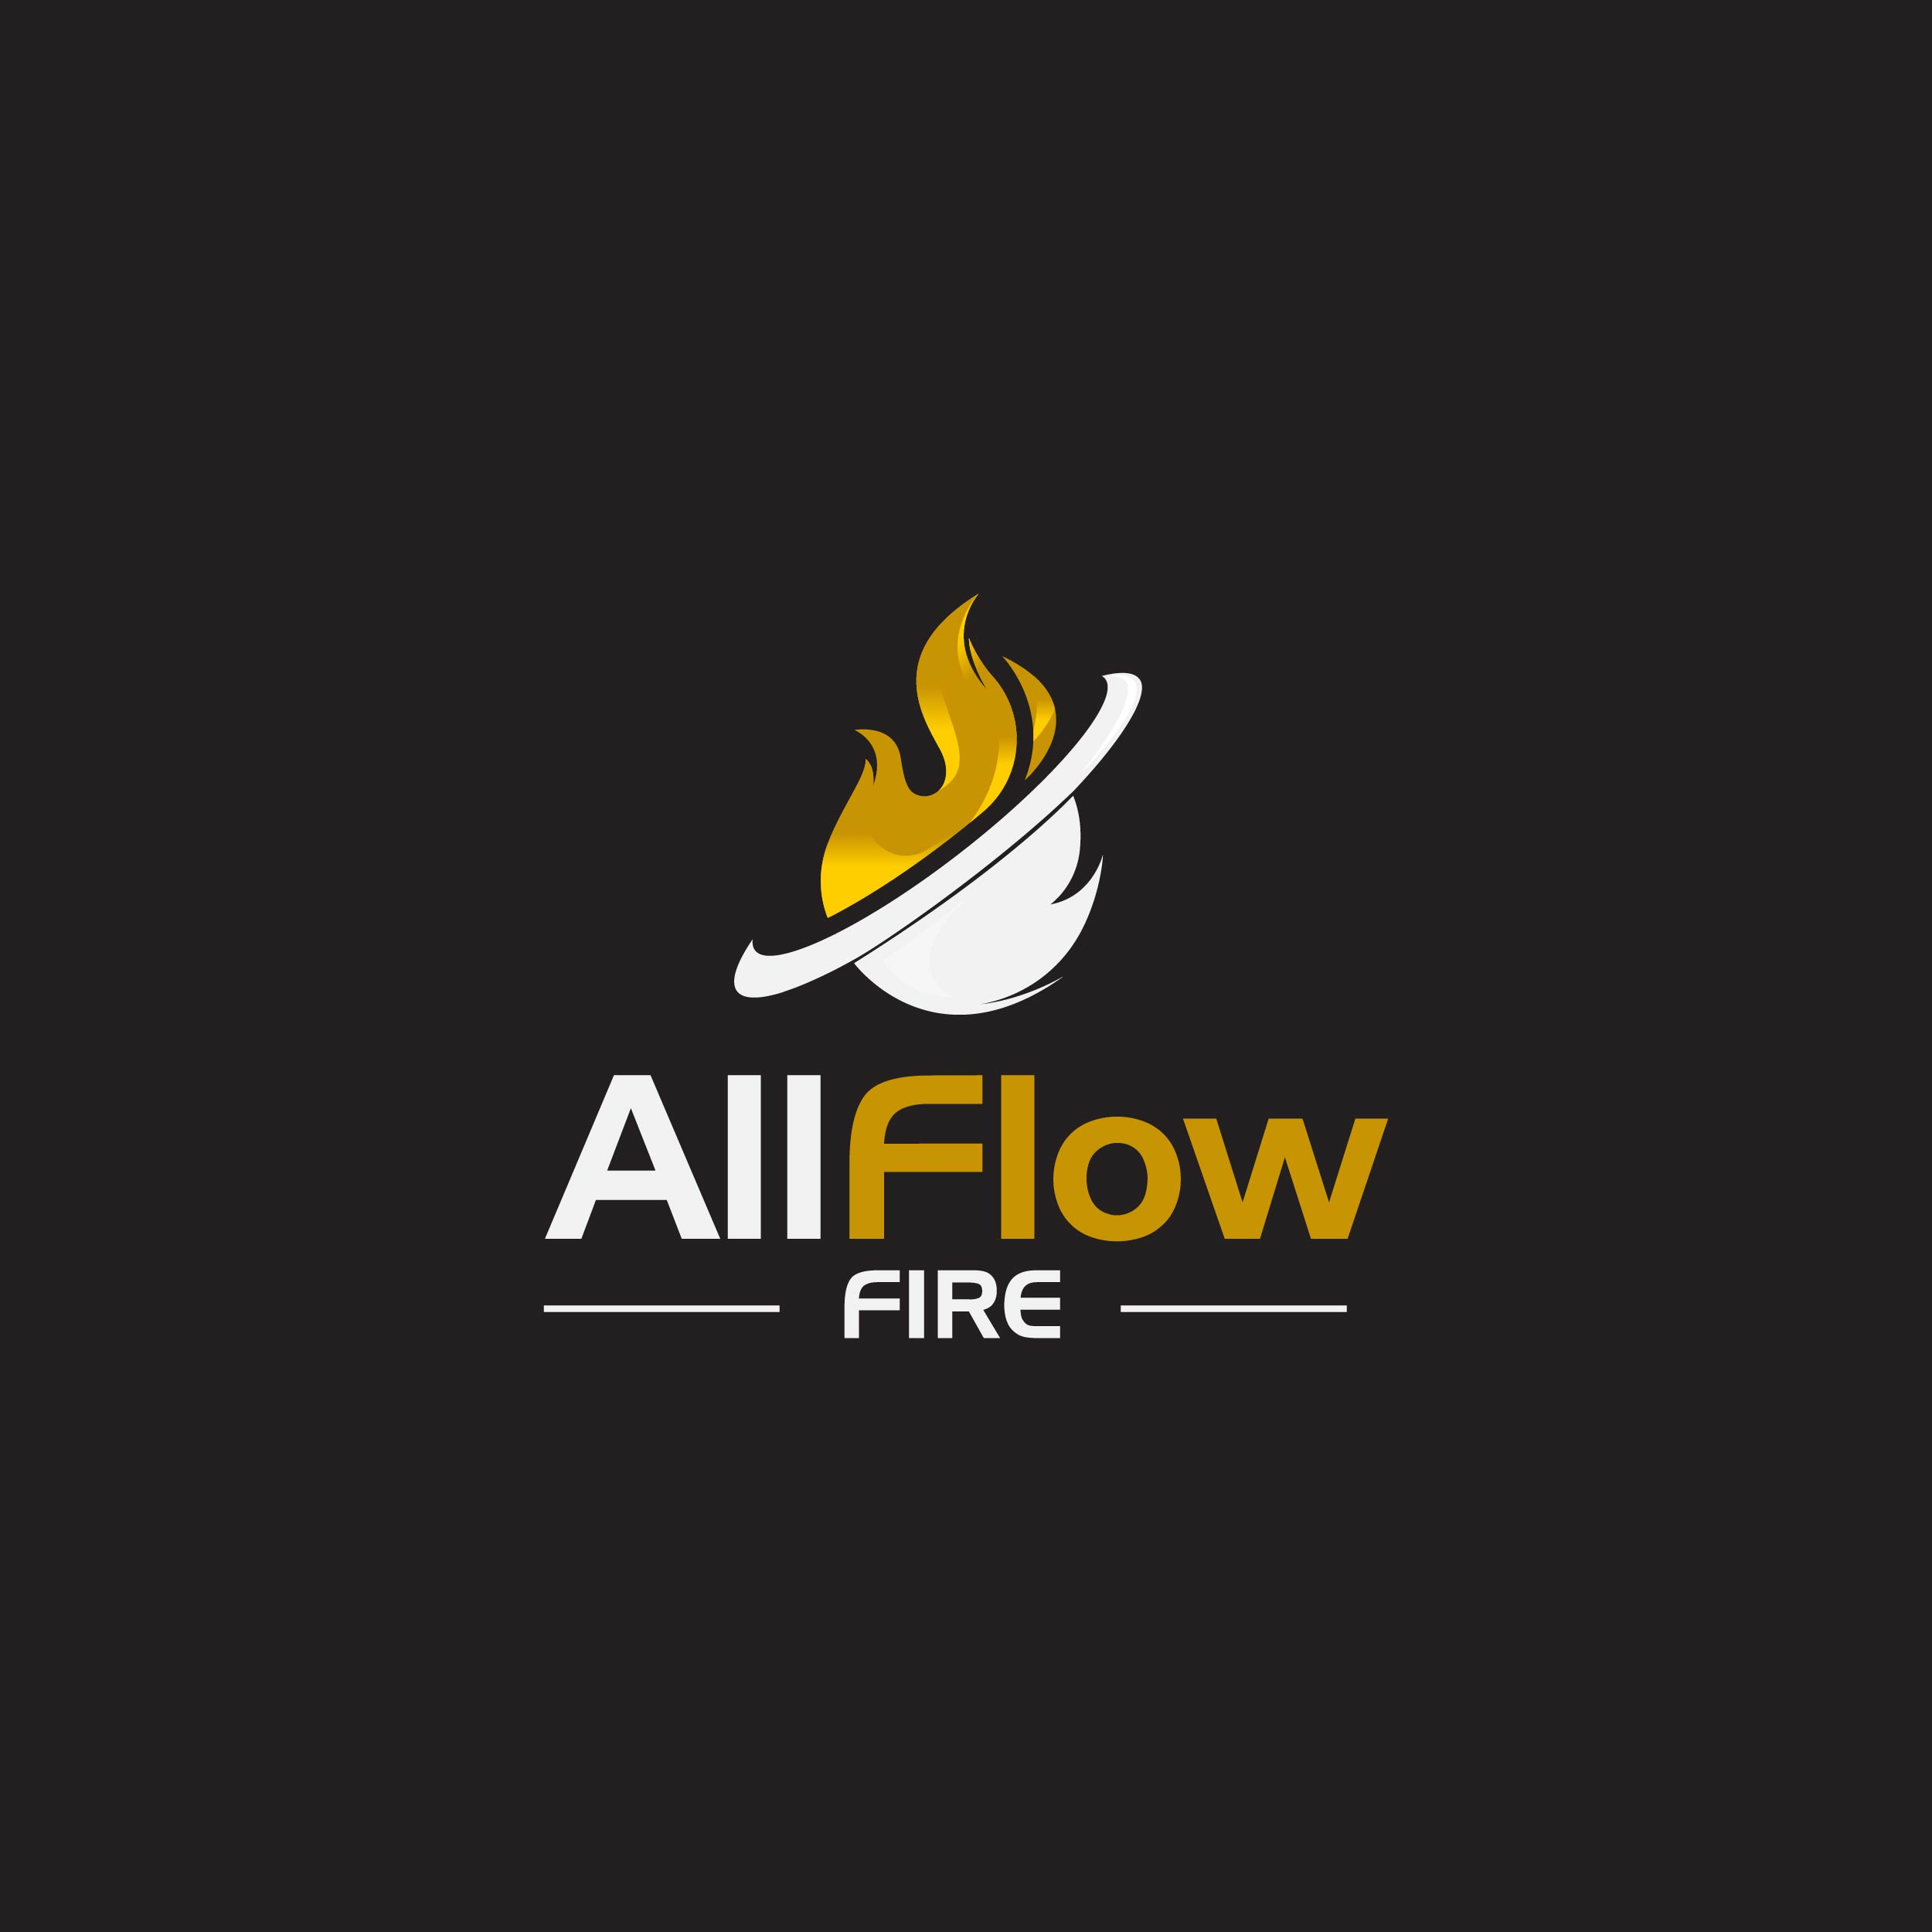 All Flow Fire